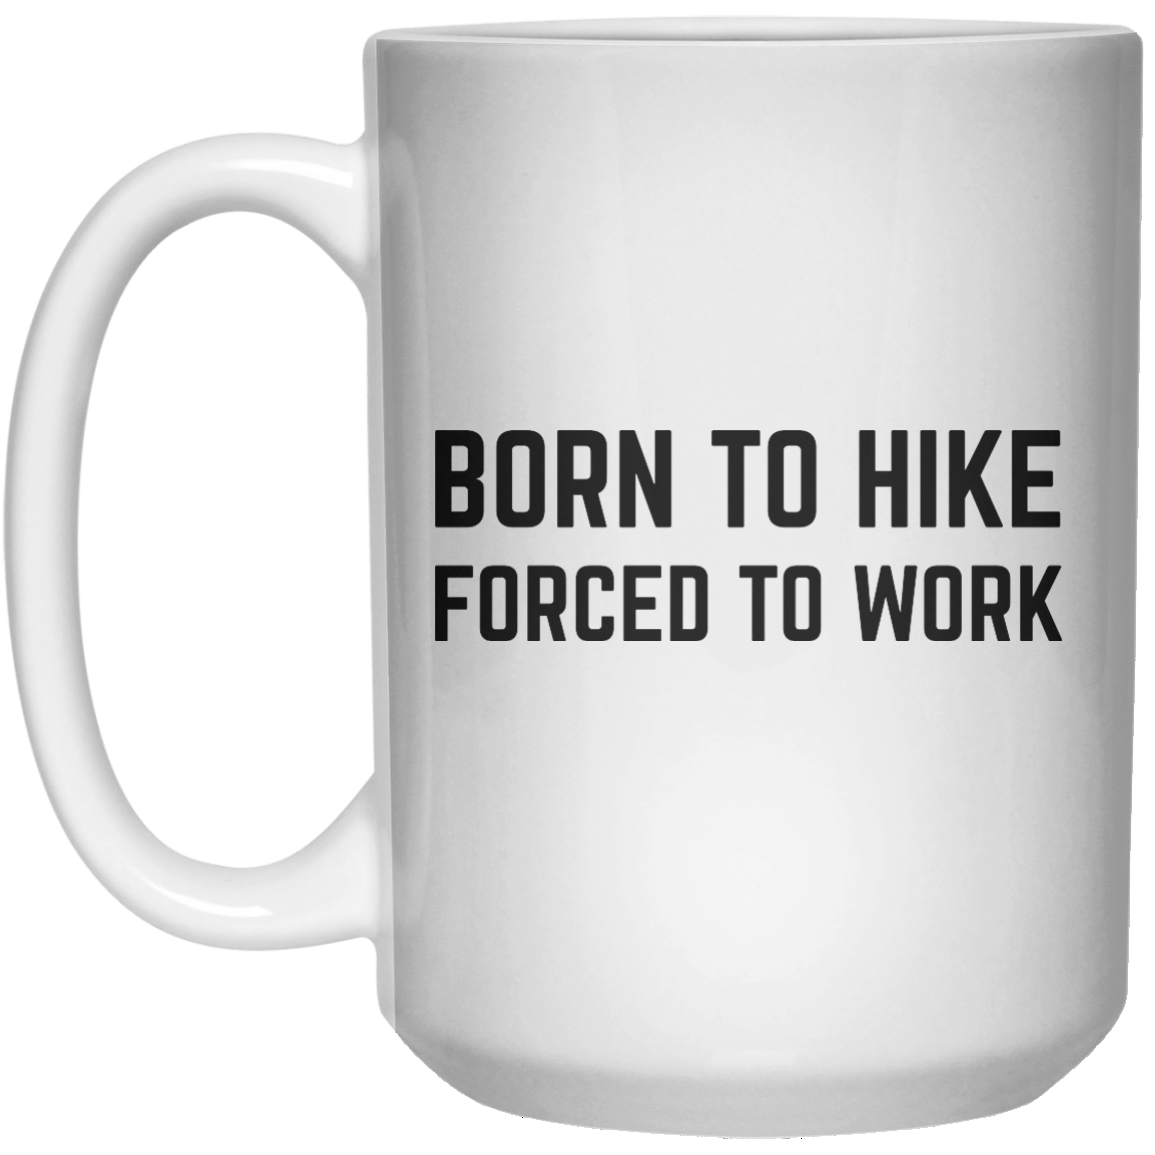 Born To Hike Forced To Work MUG  Mug - 15oz - Shirtoopia